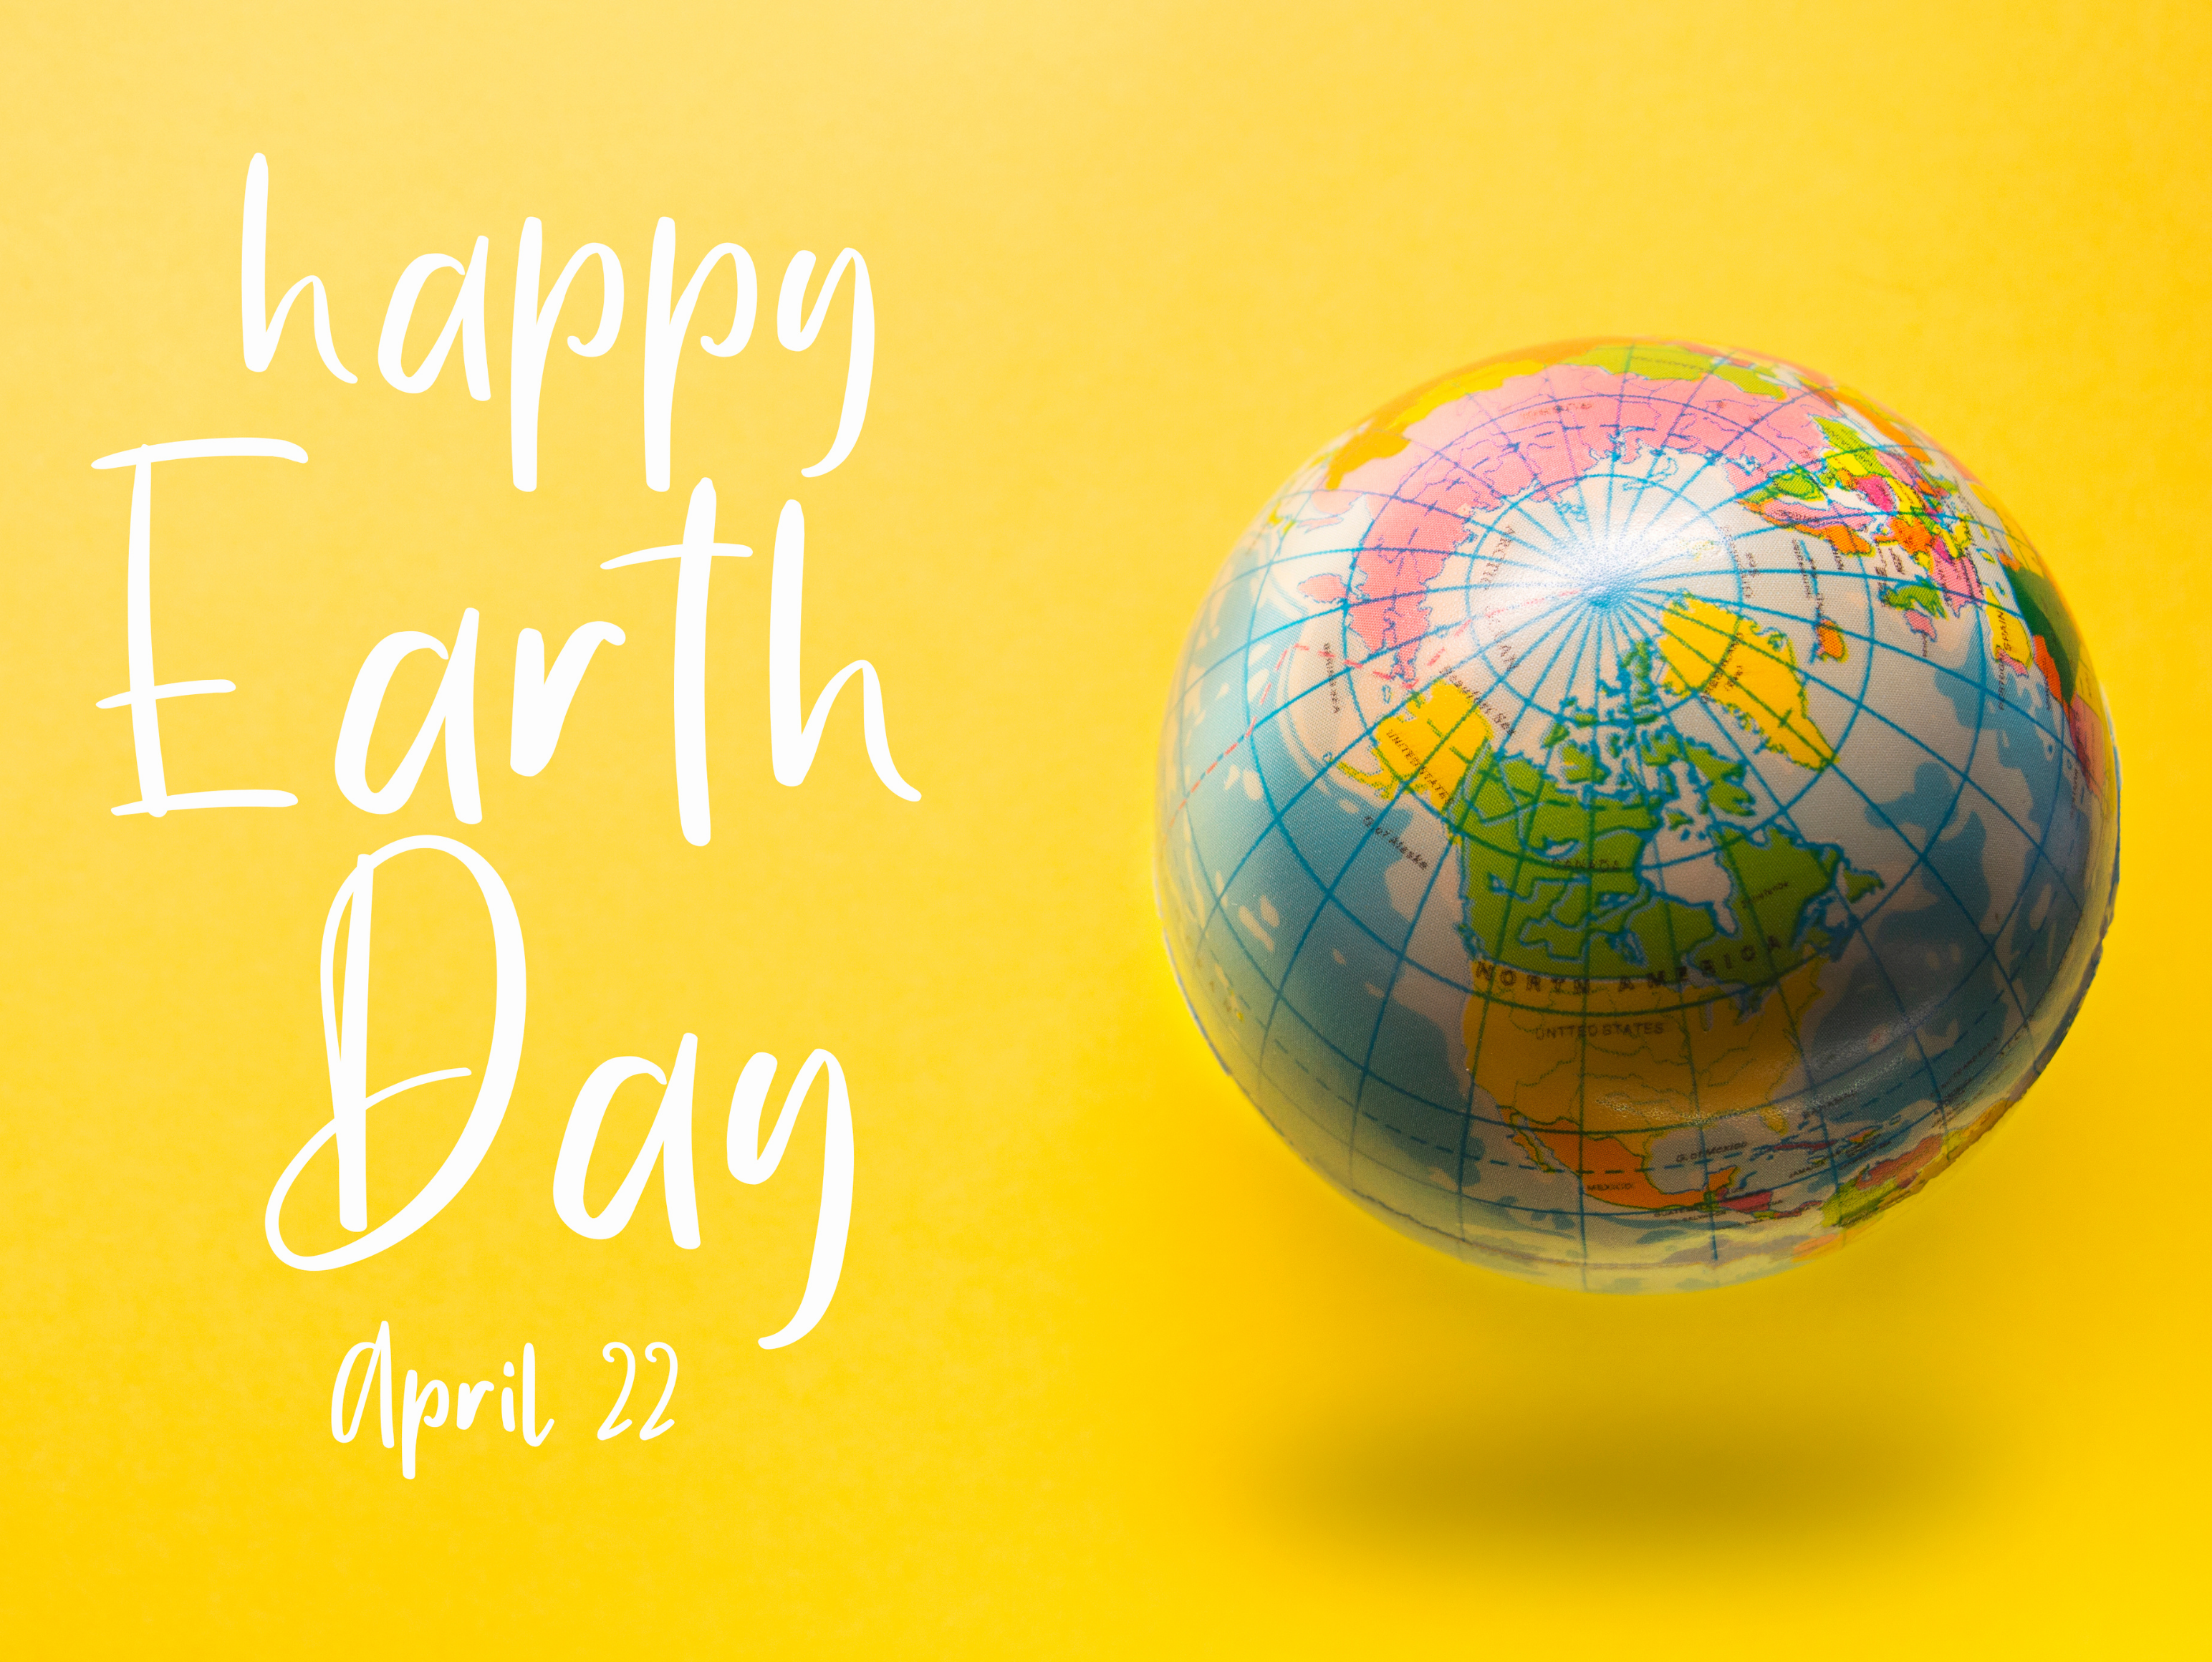 Restoring Mother Earth - An Earth Day and Year-Long Initiative by Travepreneur